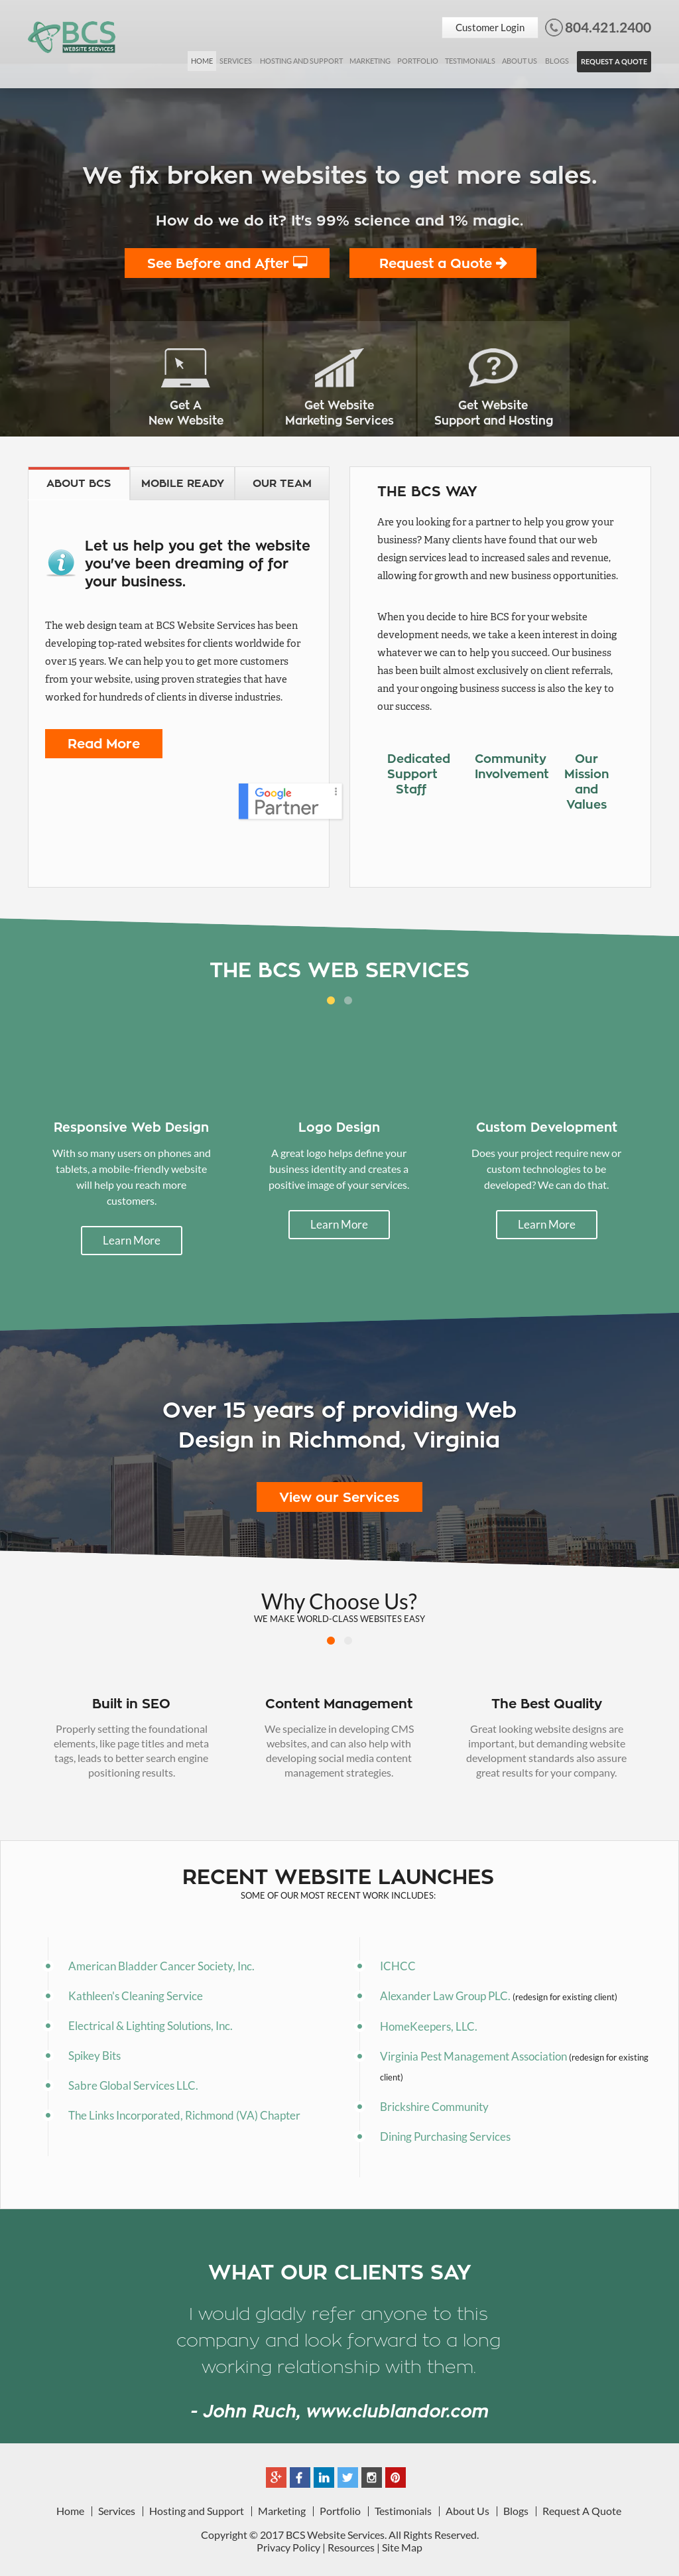 Bcs Website Services Competitors, Revenue and Employees